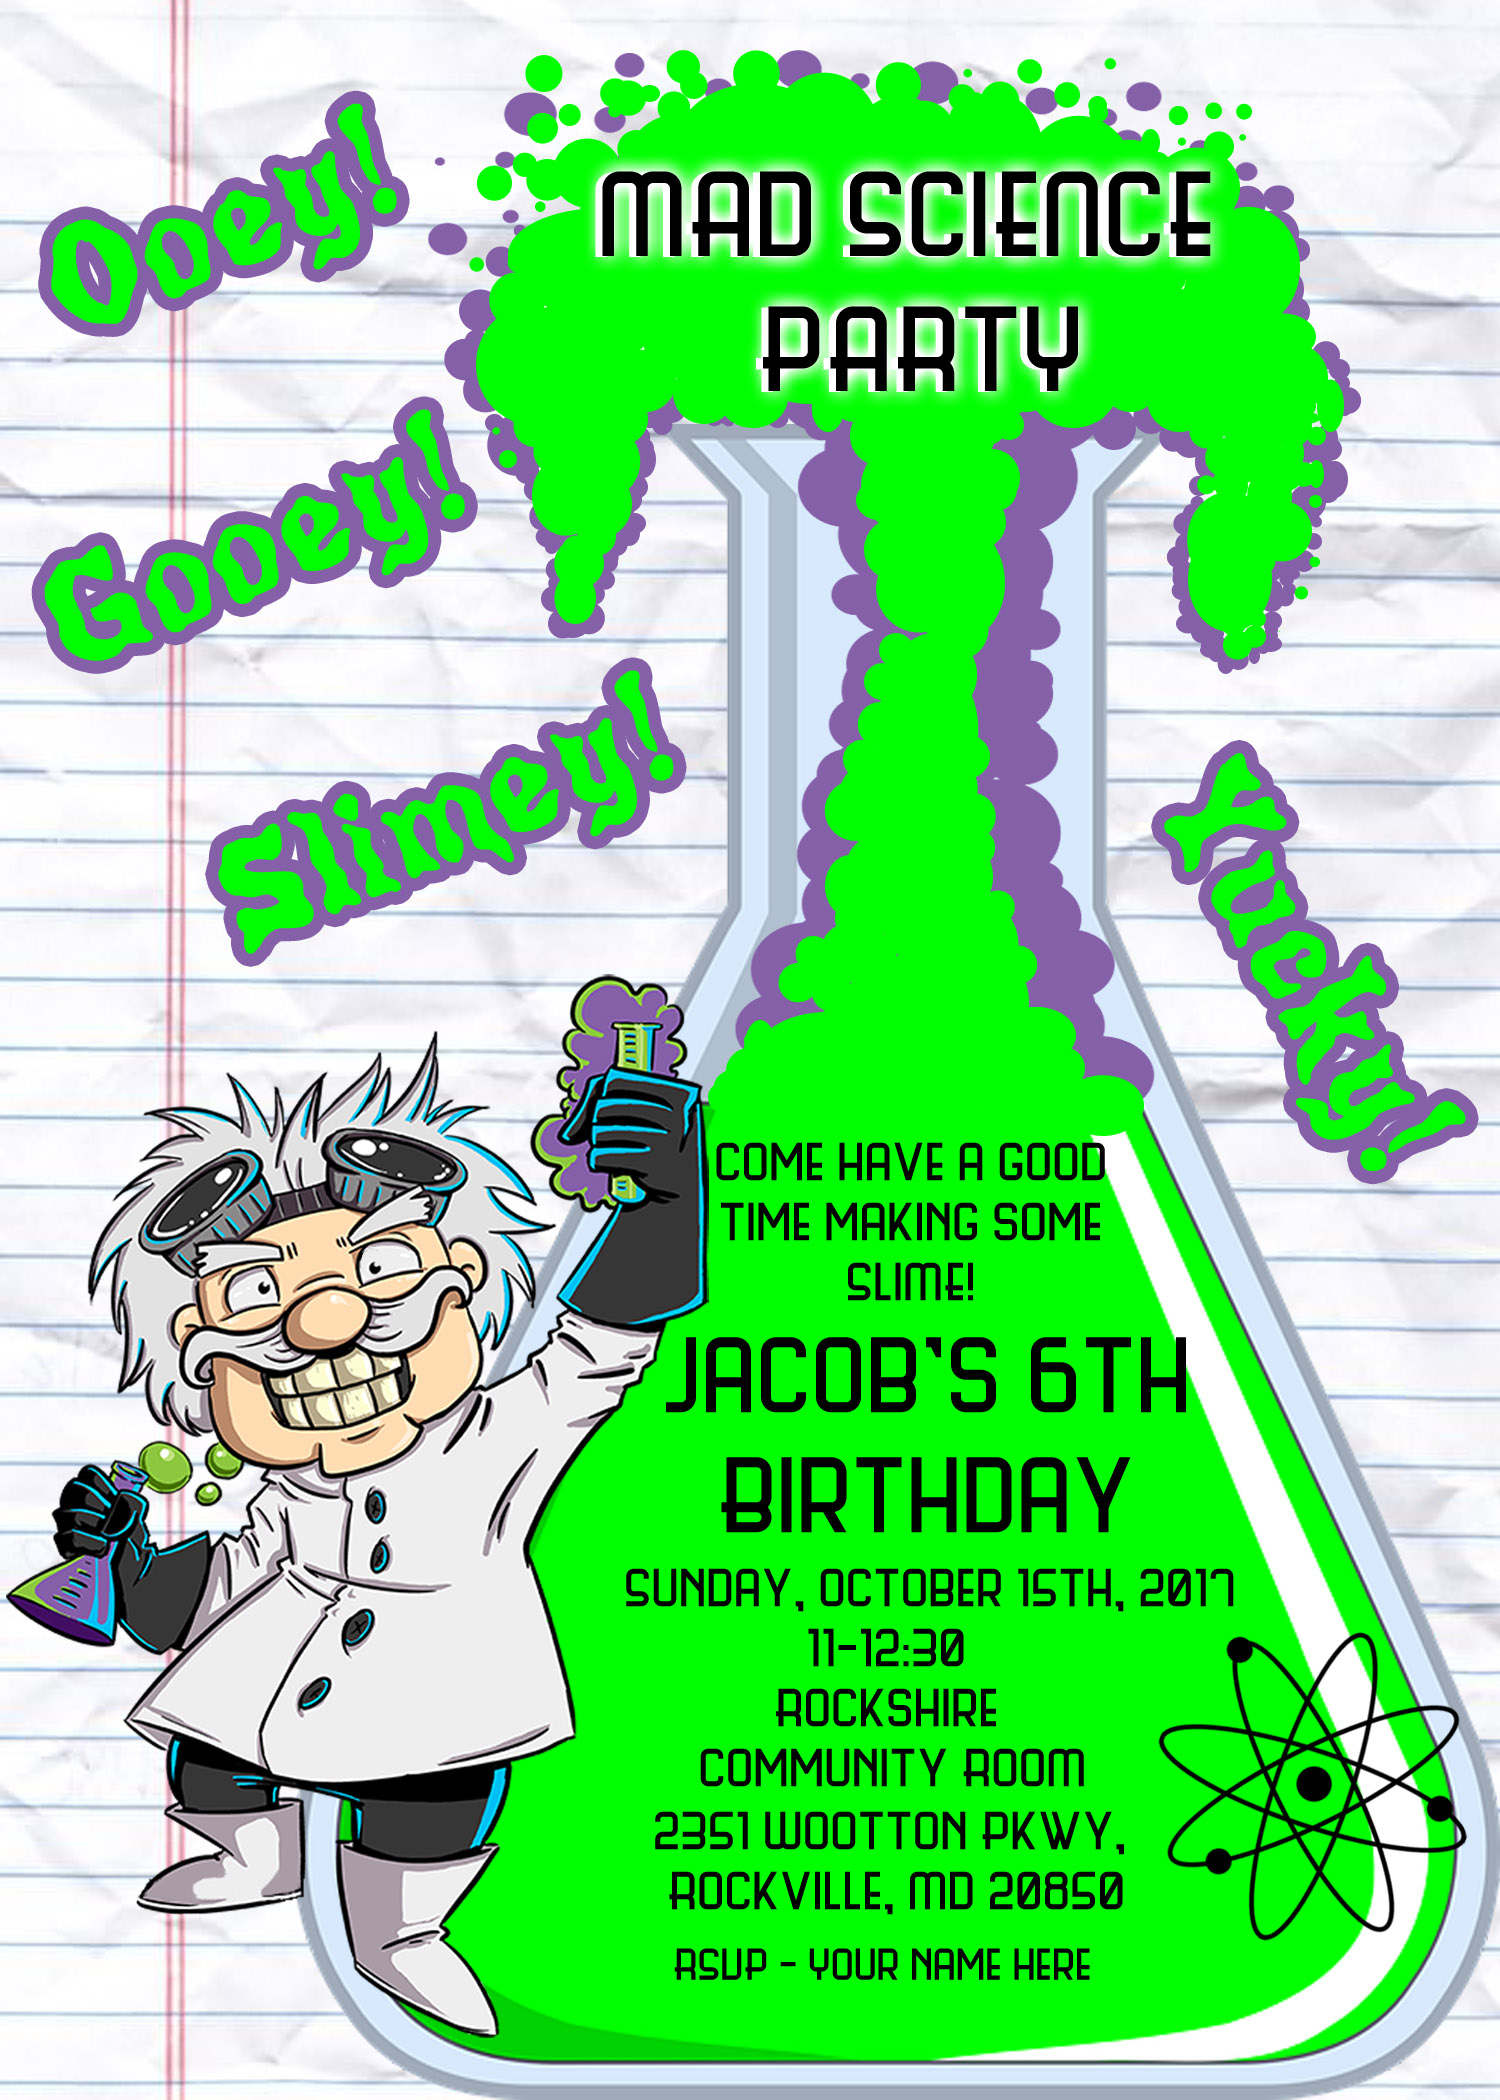 Mad Scientist Bday